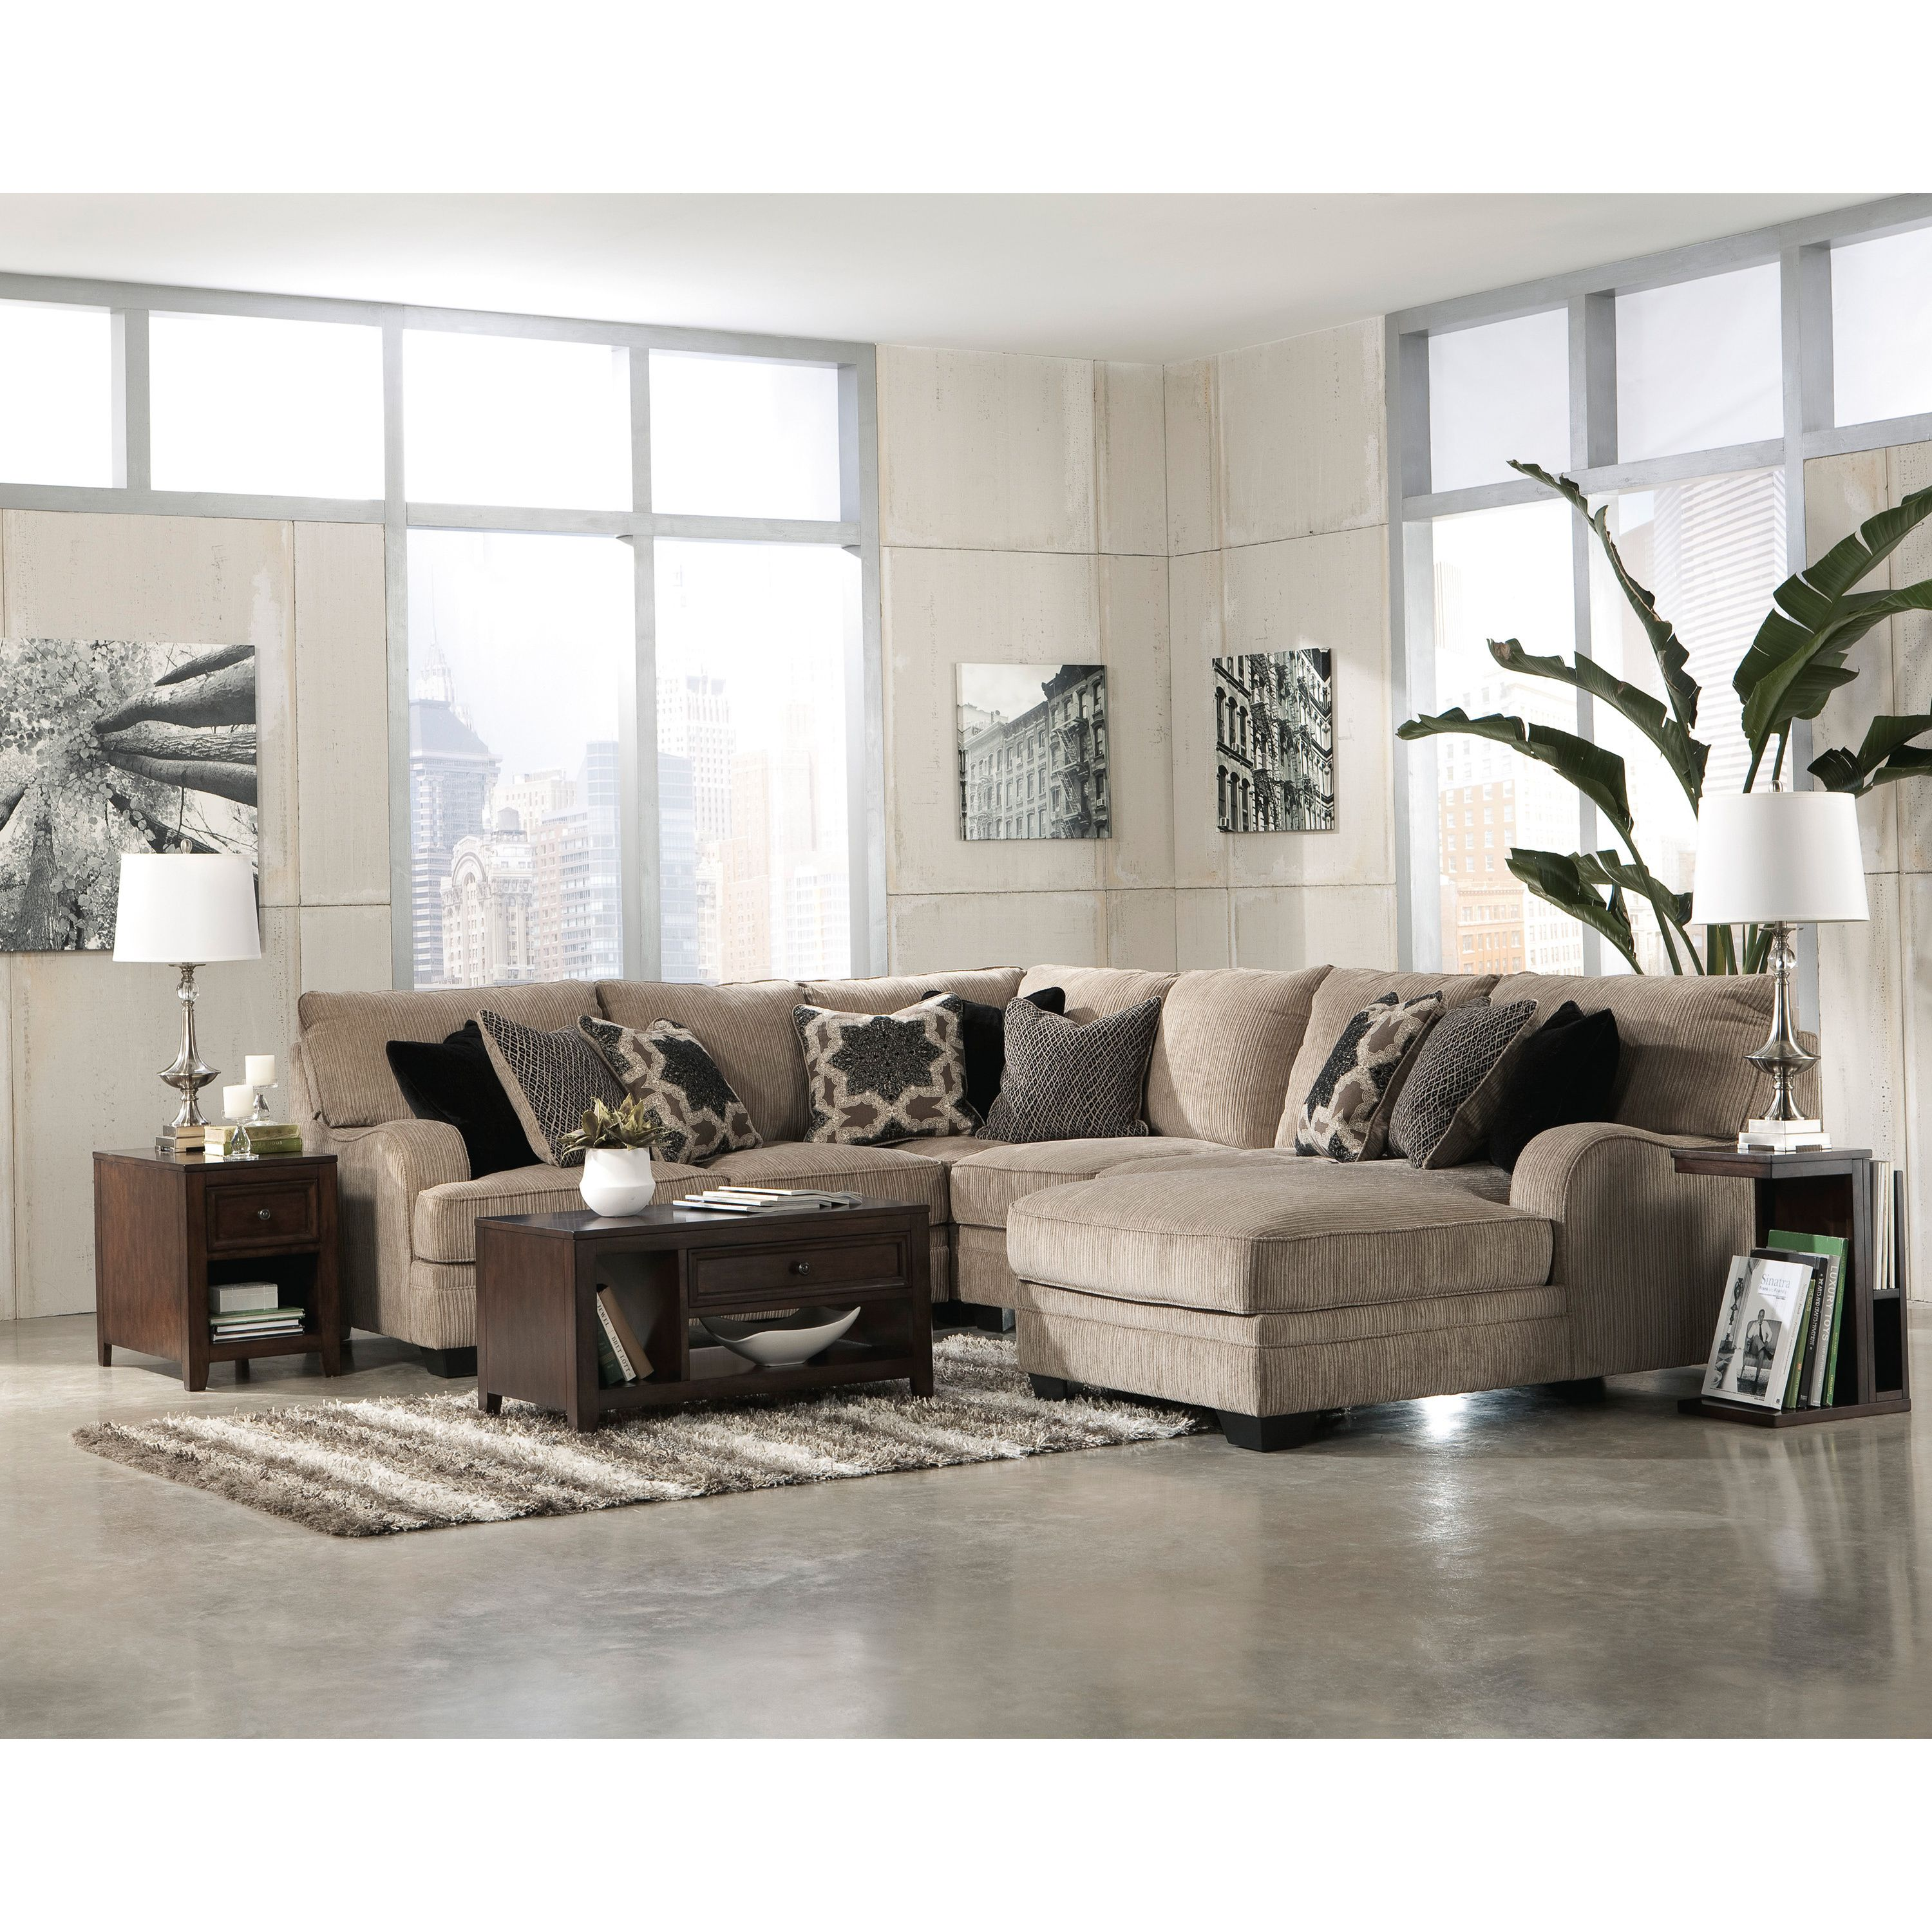 Signature Design by Ashley Katisha Platinum Loveseat Sectional by